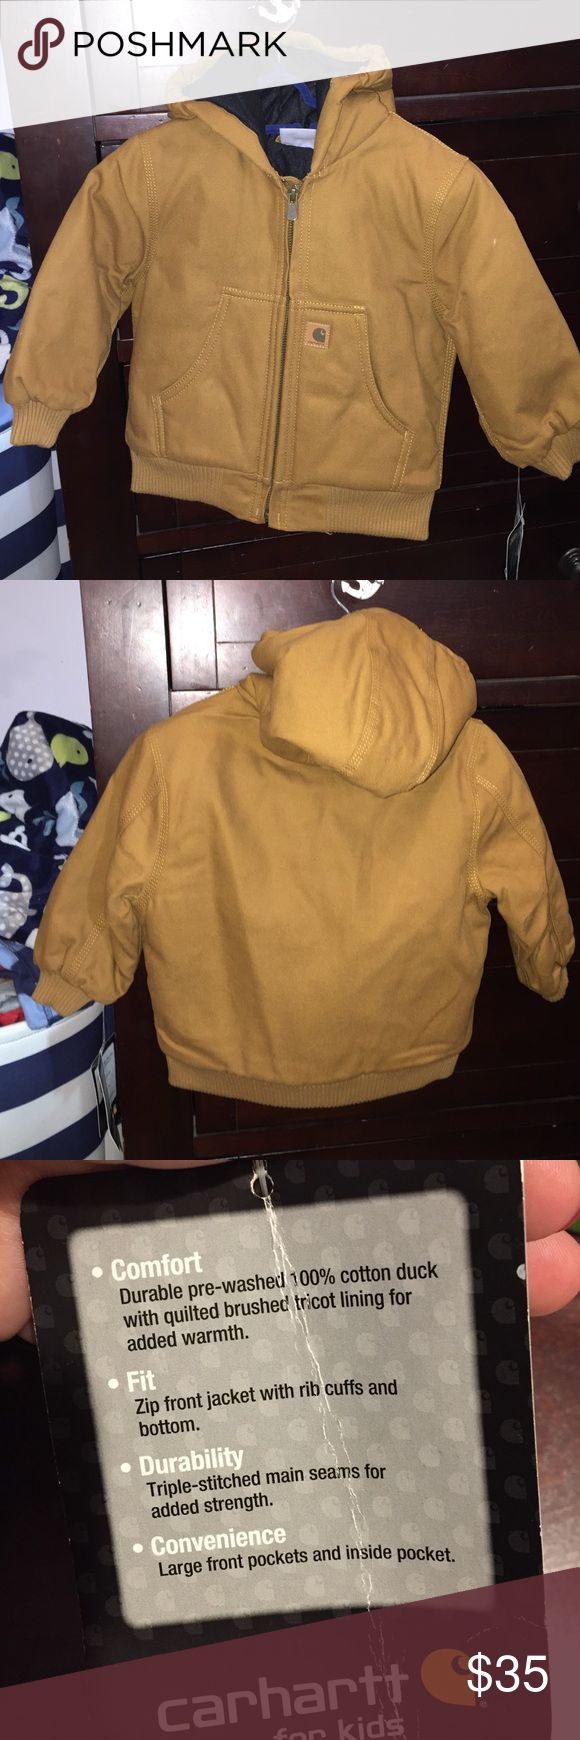 Kids Carhartt winter jacket!! NWT Never worn kids carhartt jacket! Size 24months Carhartt Jackets & Coats